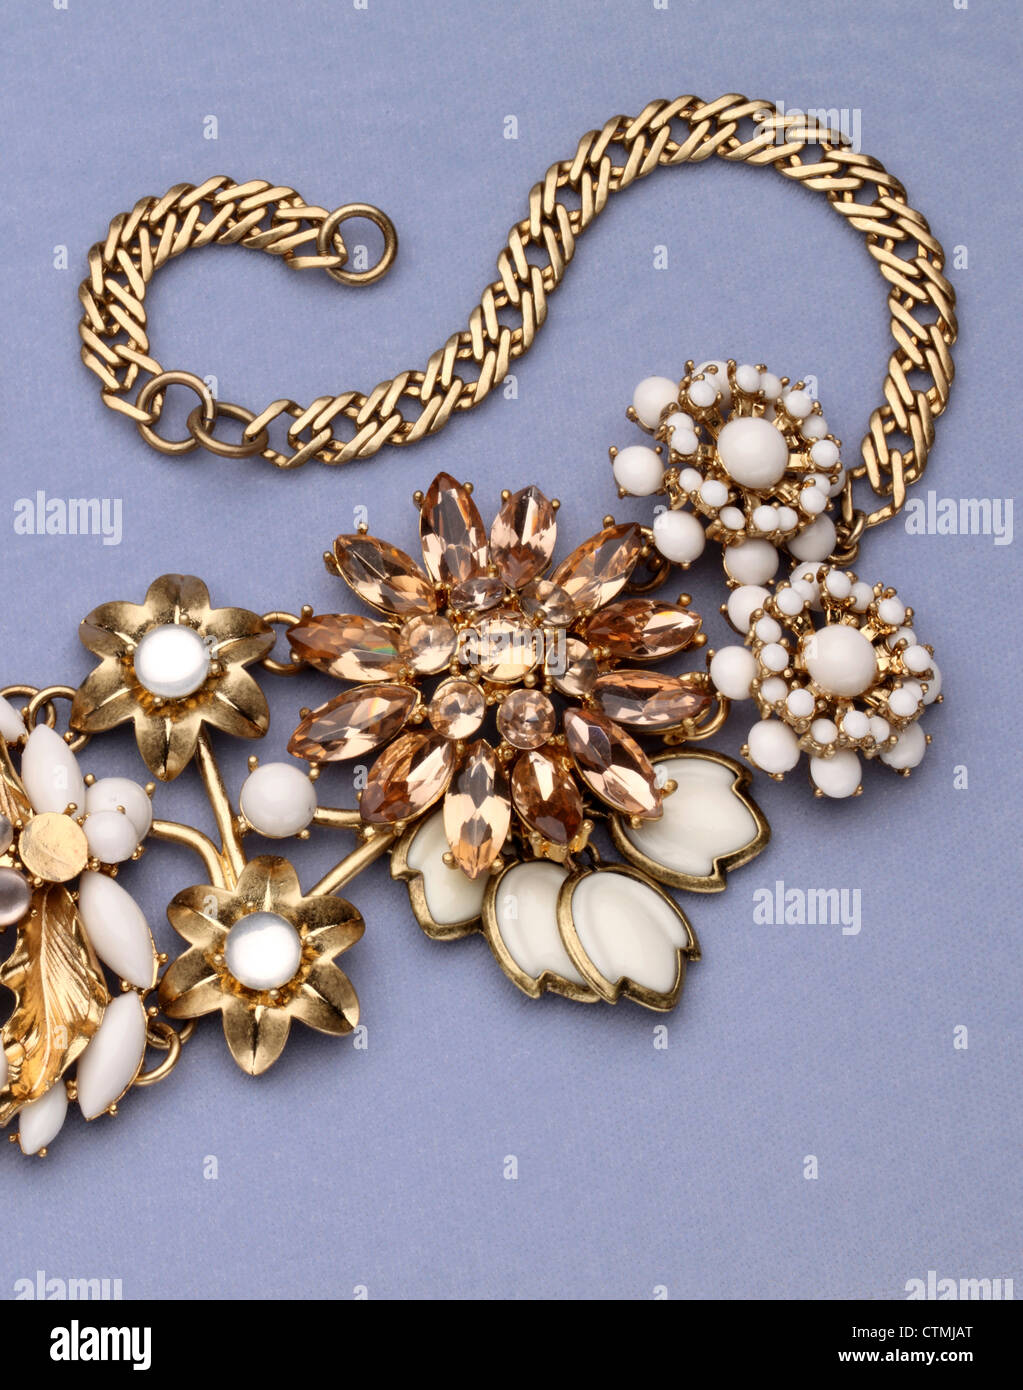 Costume jewelry A large gold necklace with flowers Stock Photo